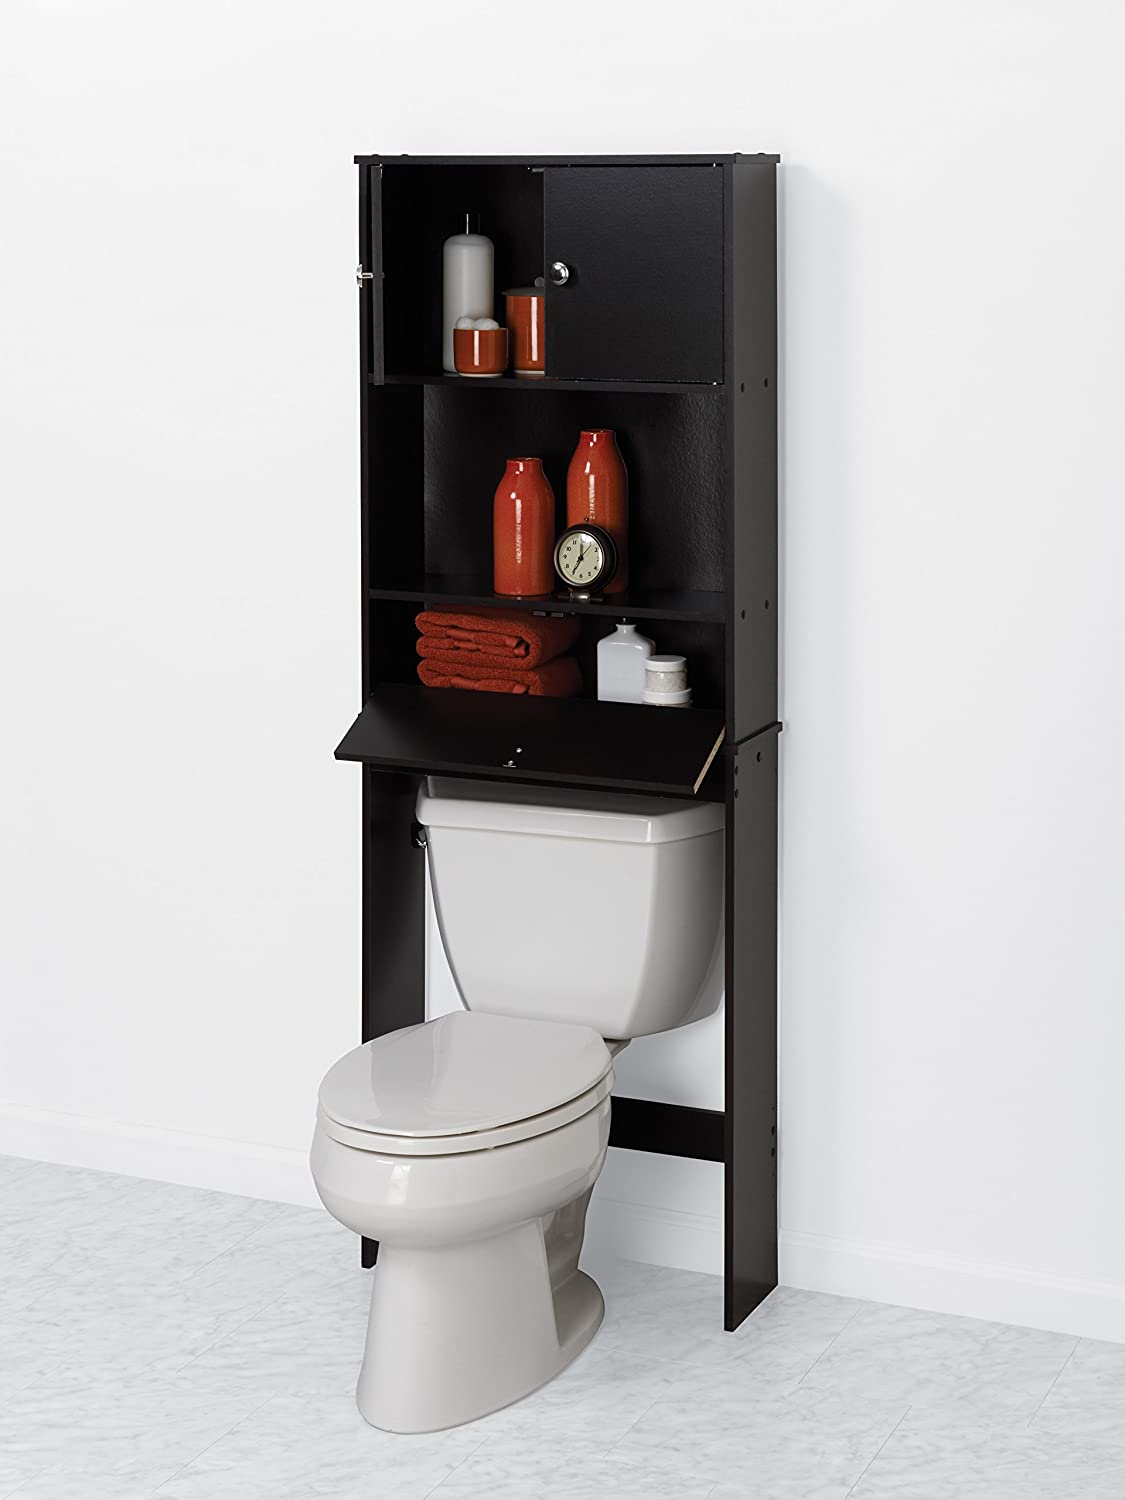 Toilet Shelf Space Saver Best 25 Space Saving Storage Ideas On Pinterest Space Saving Kitchens